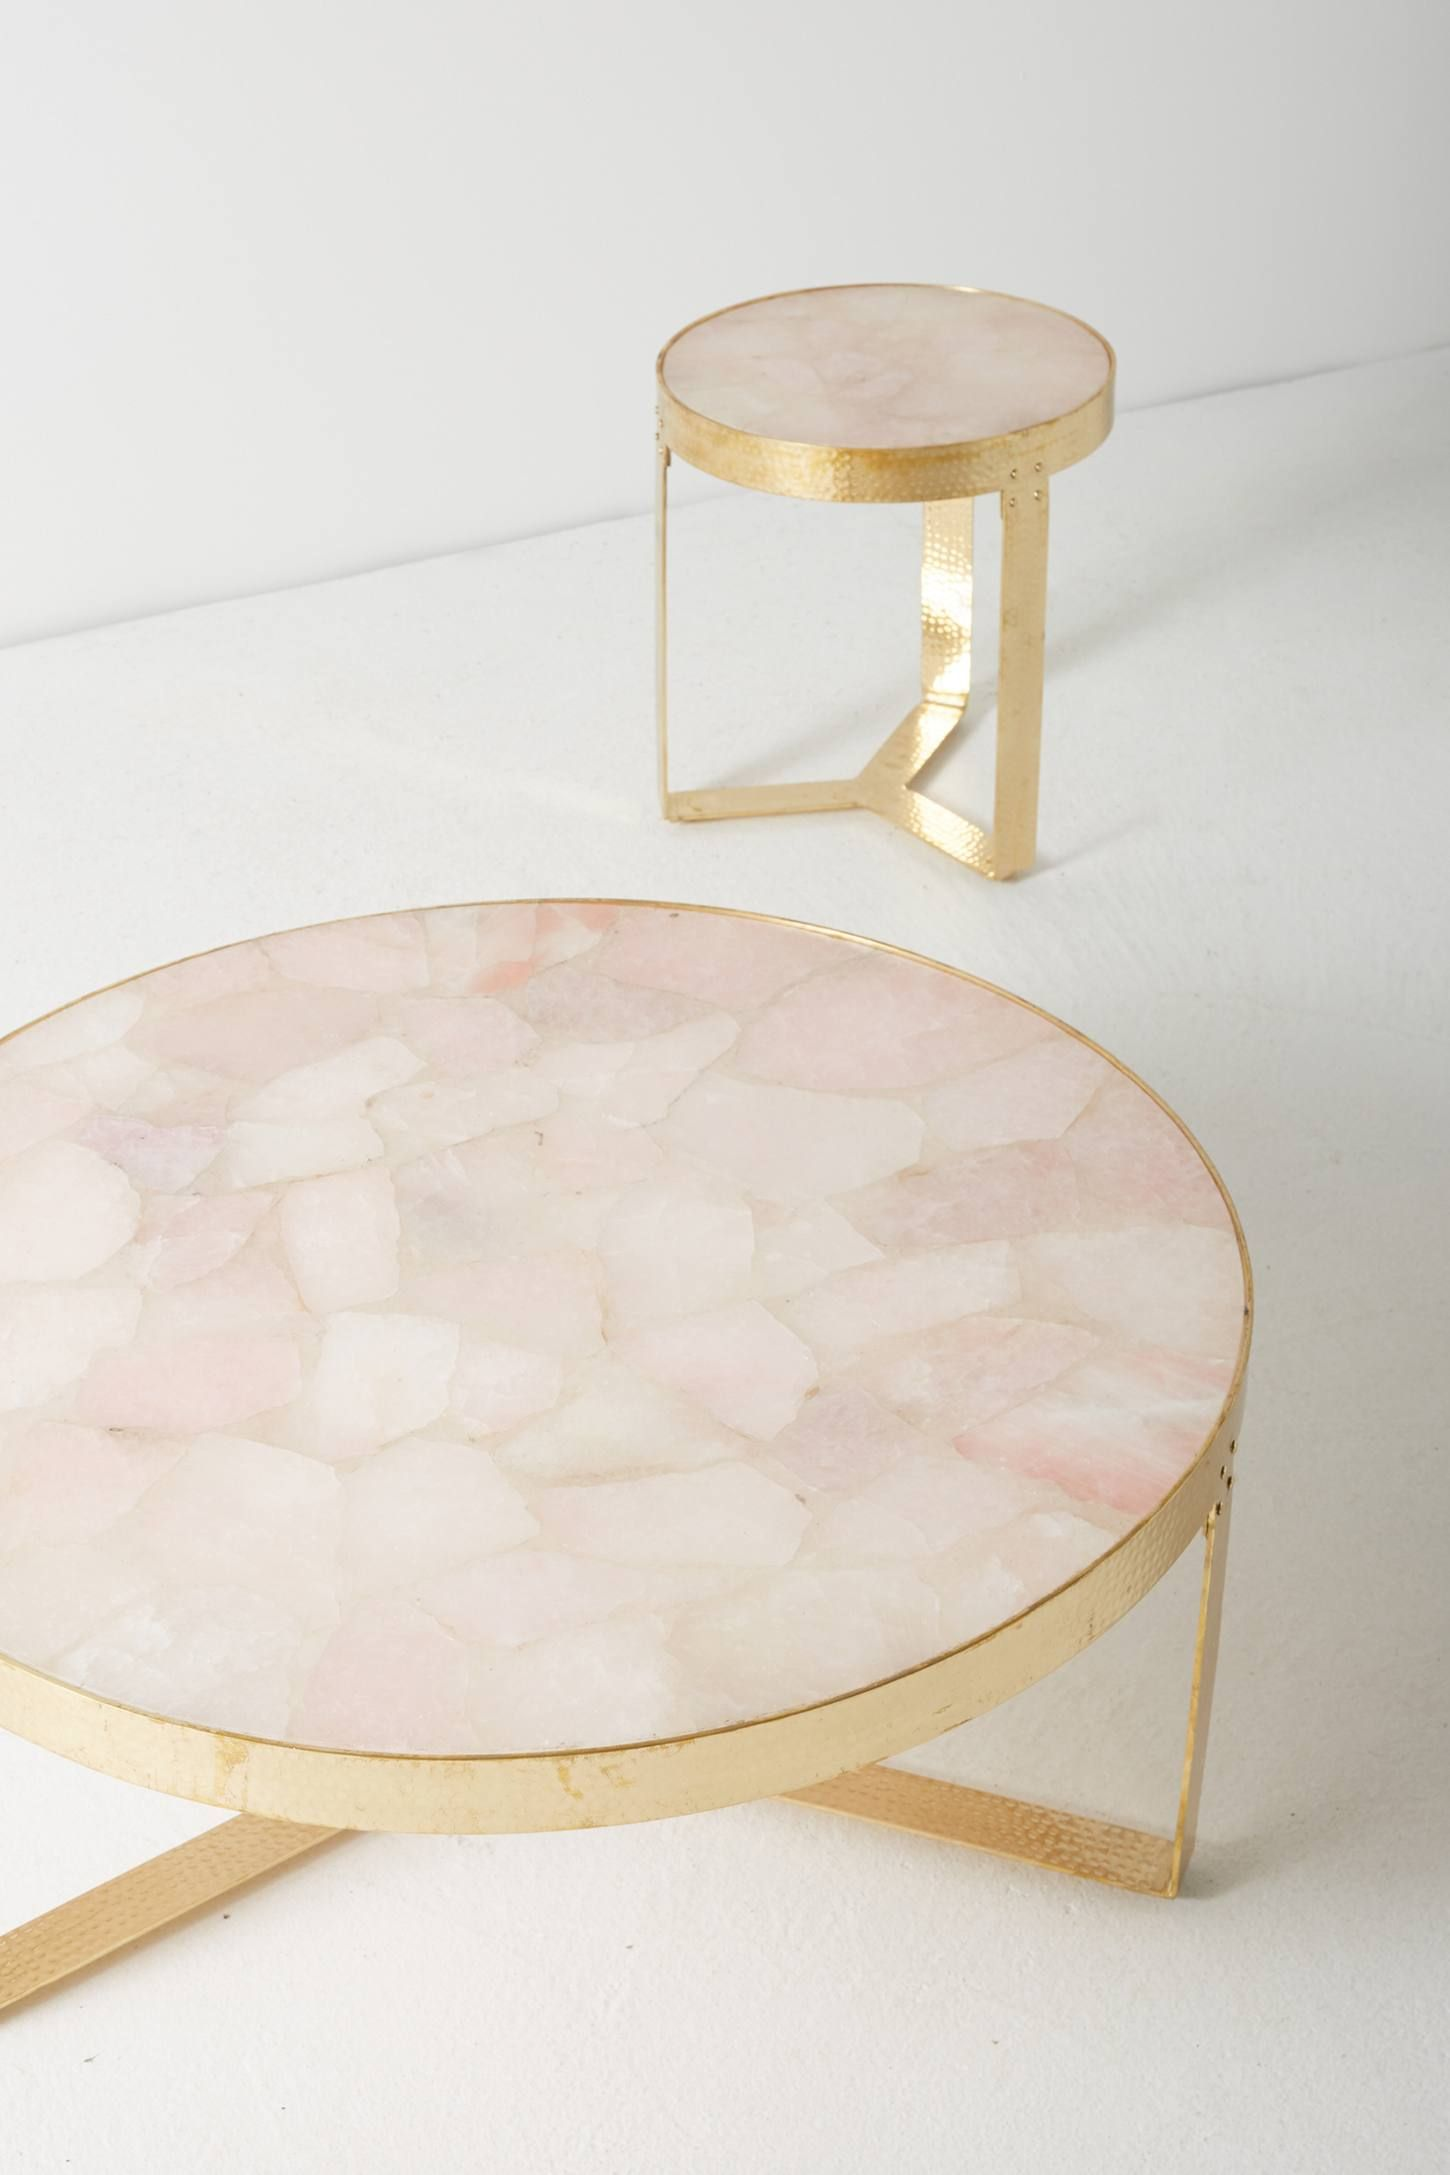 - Lirit Coffee Table Stone Coffee Table, Metal Side Table, Decor